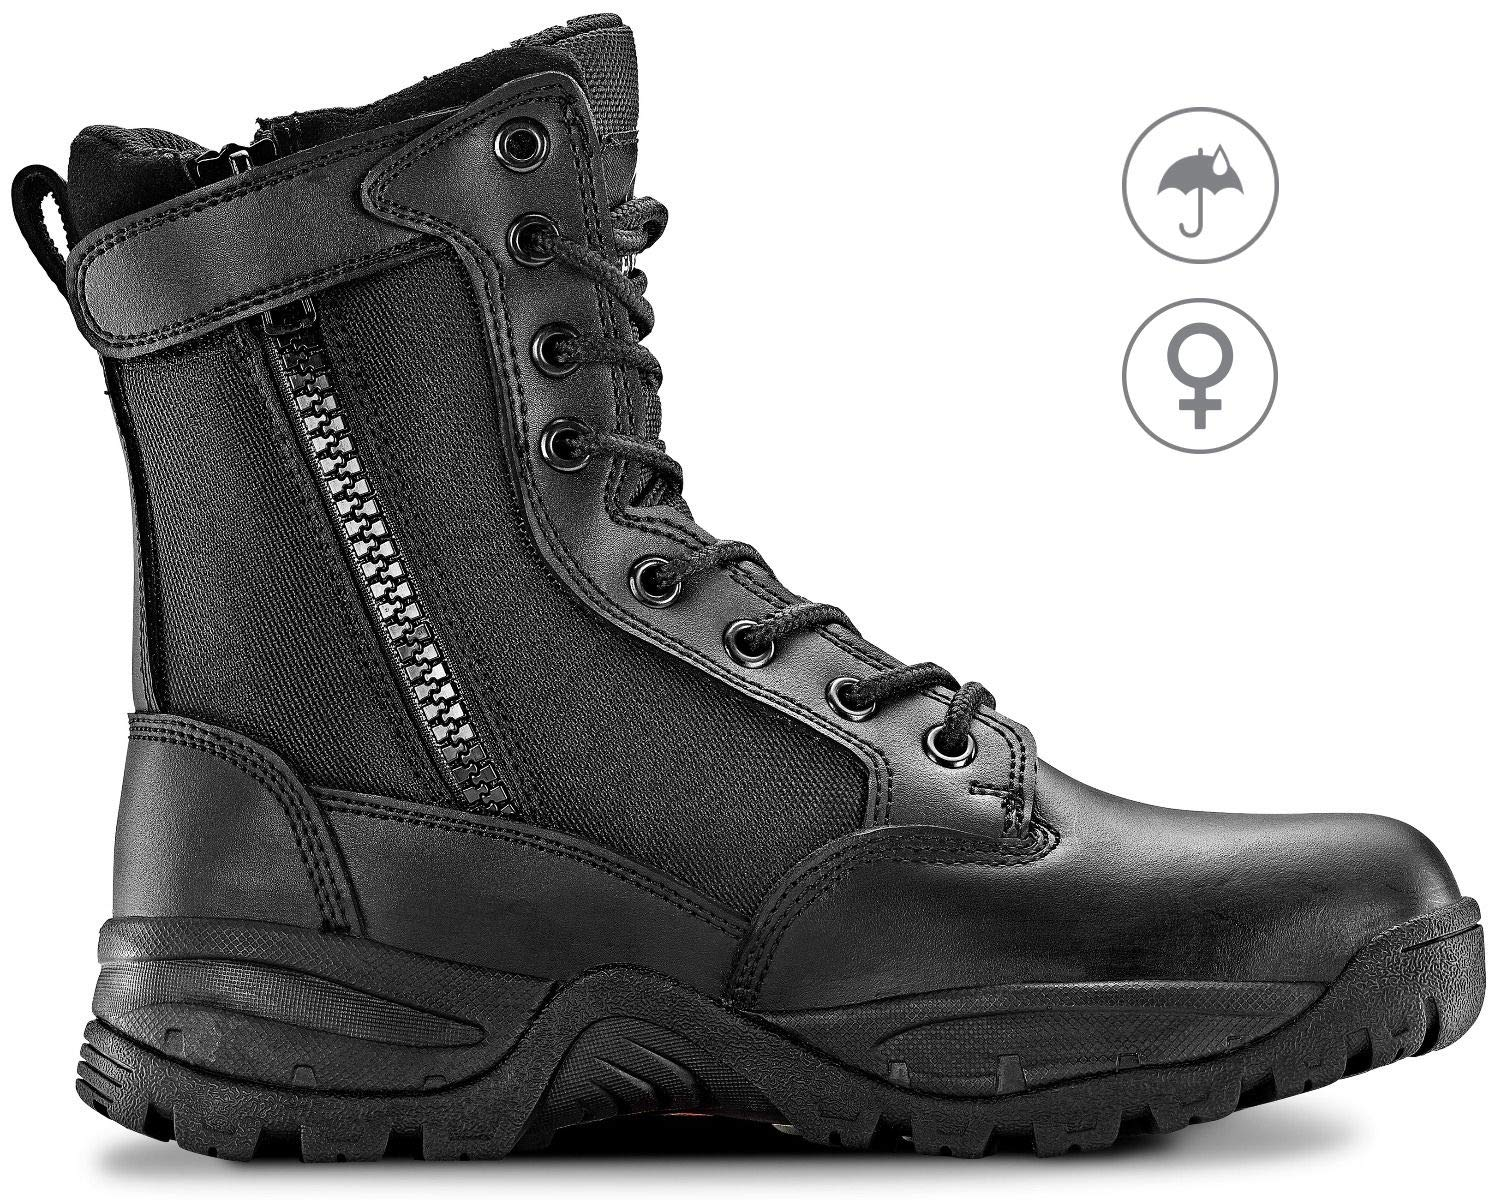 Maelstrom TAC Force 8'' Women's Military Tactical Work Waterproof Boots with Zipper, Style #F5180Z WP, Black, 8'', Size 9.5M